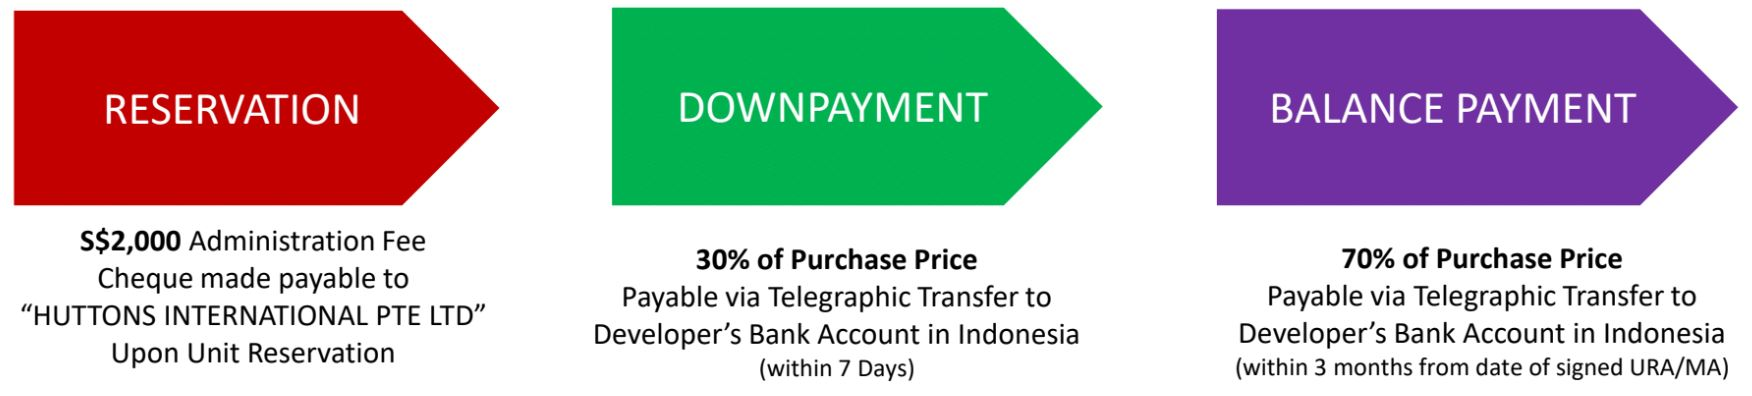 Citadines Berawa Beach Bali Payment Option 1